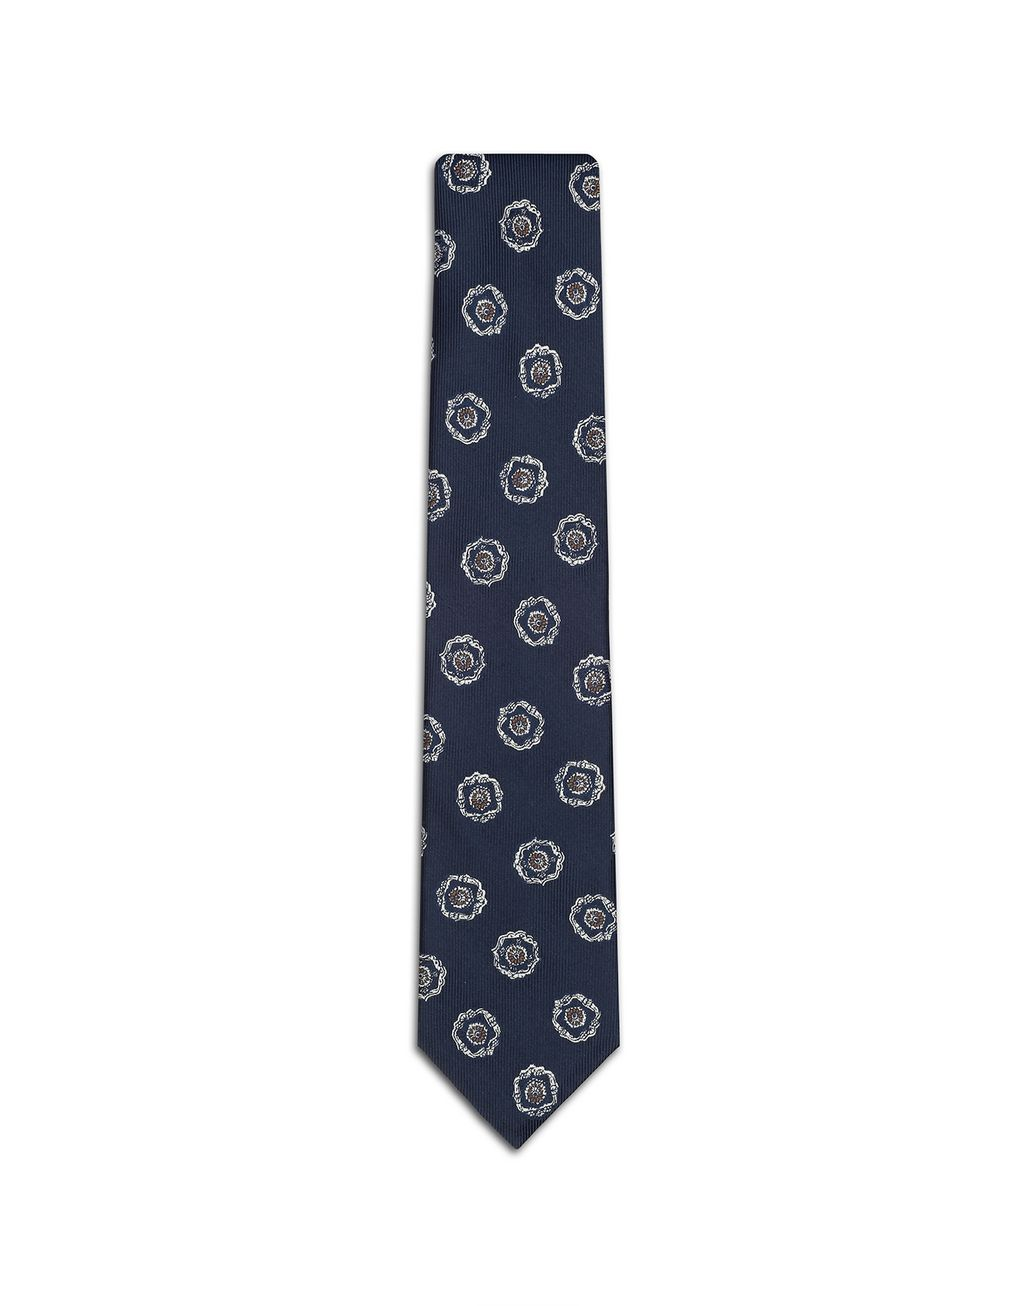 BRIONI Cravate Bleue à Grand Motif Cravate Homme f